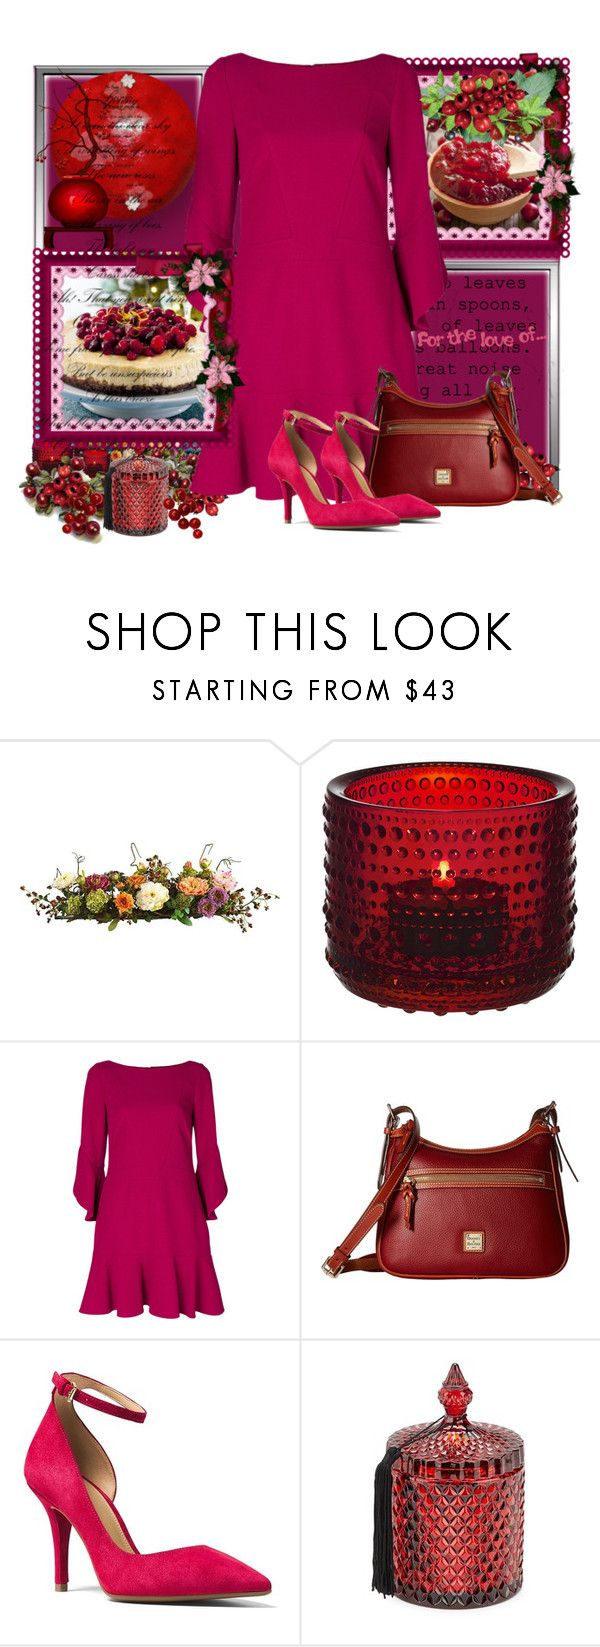 """Cranberry"" by fashionrushs ❤ liked on Polyvore featuring Nearly Natural, iittala, Michael Michaud, Talbot Runhof, Dooney & Bourke, MICHAEL Michael Kors and D.L. & Co."